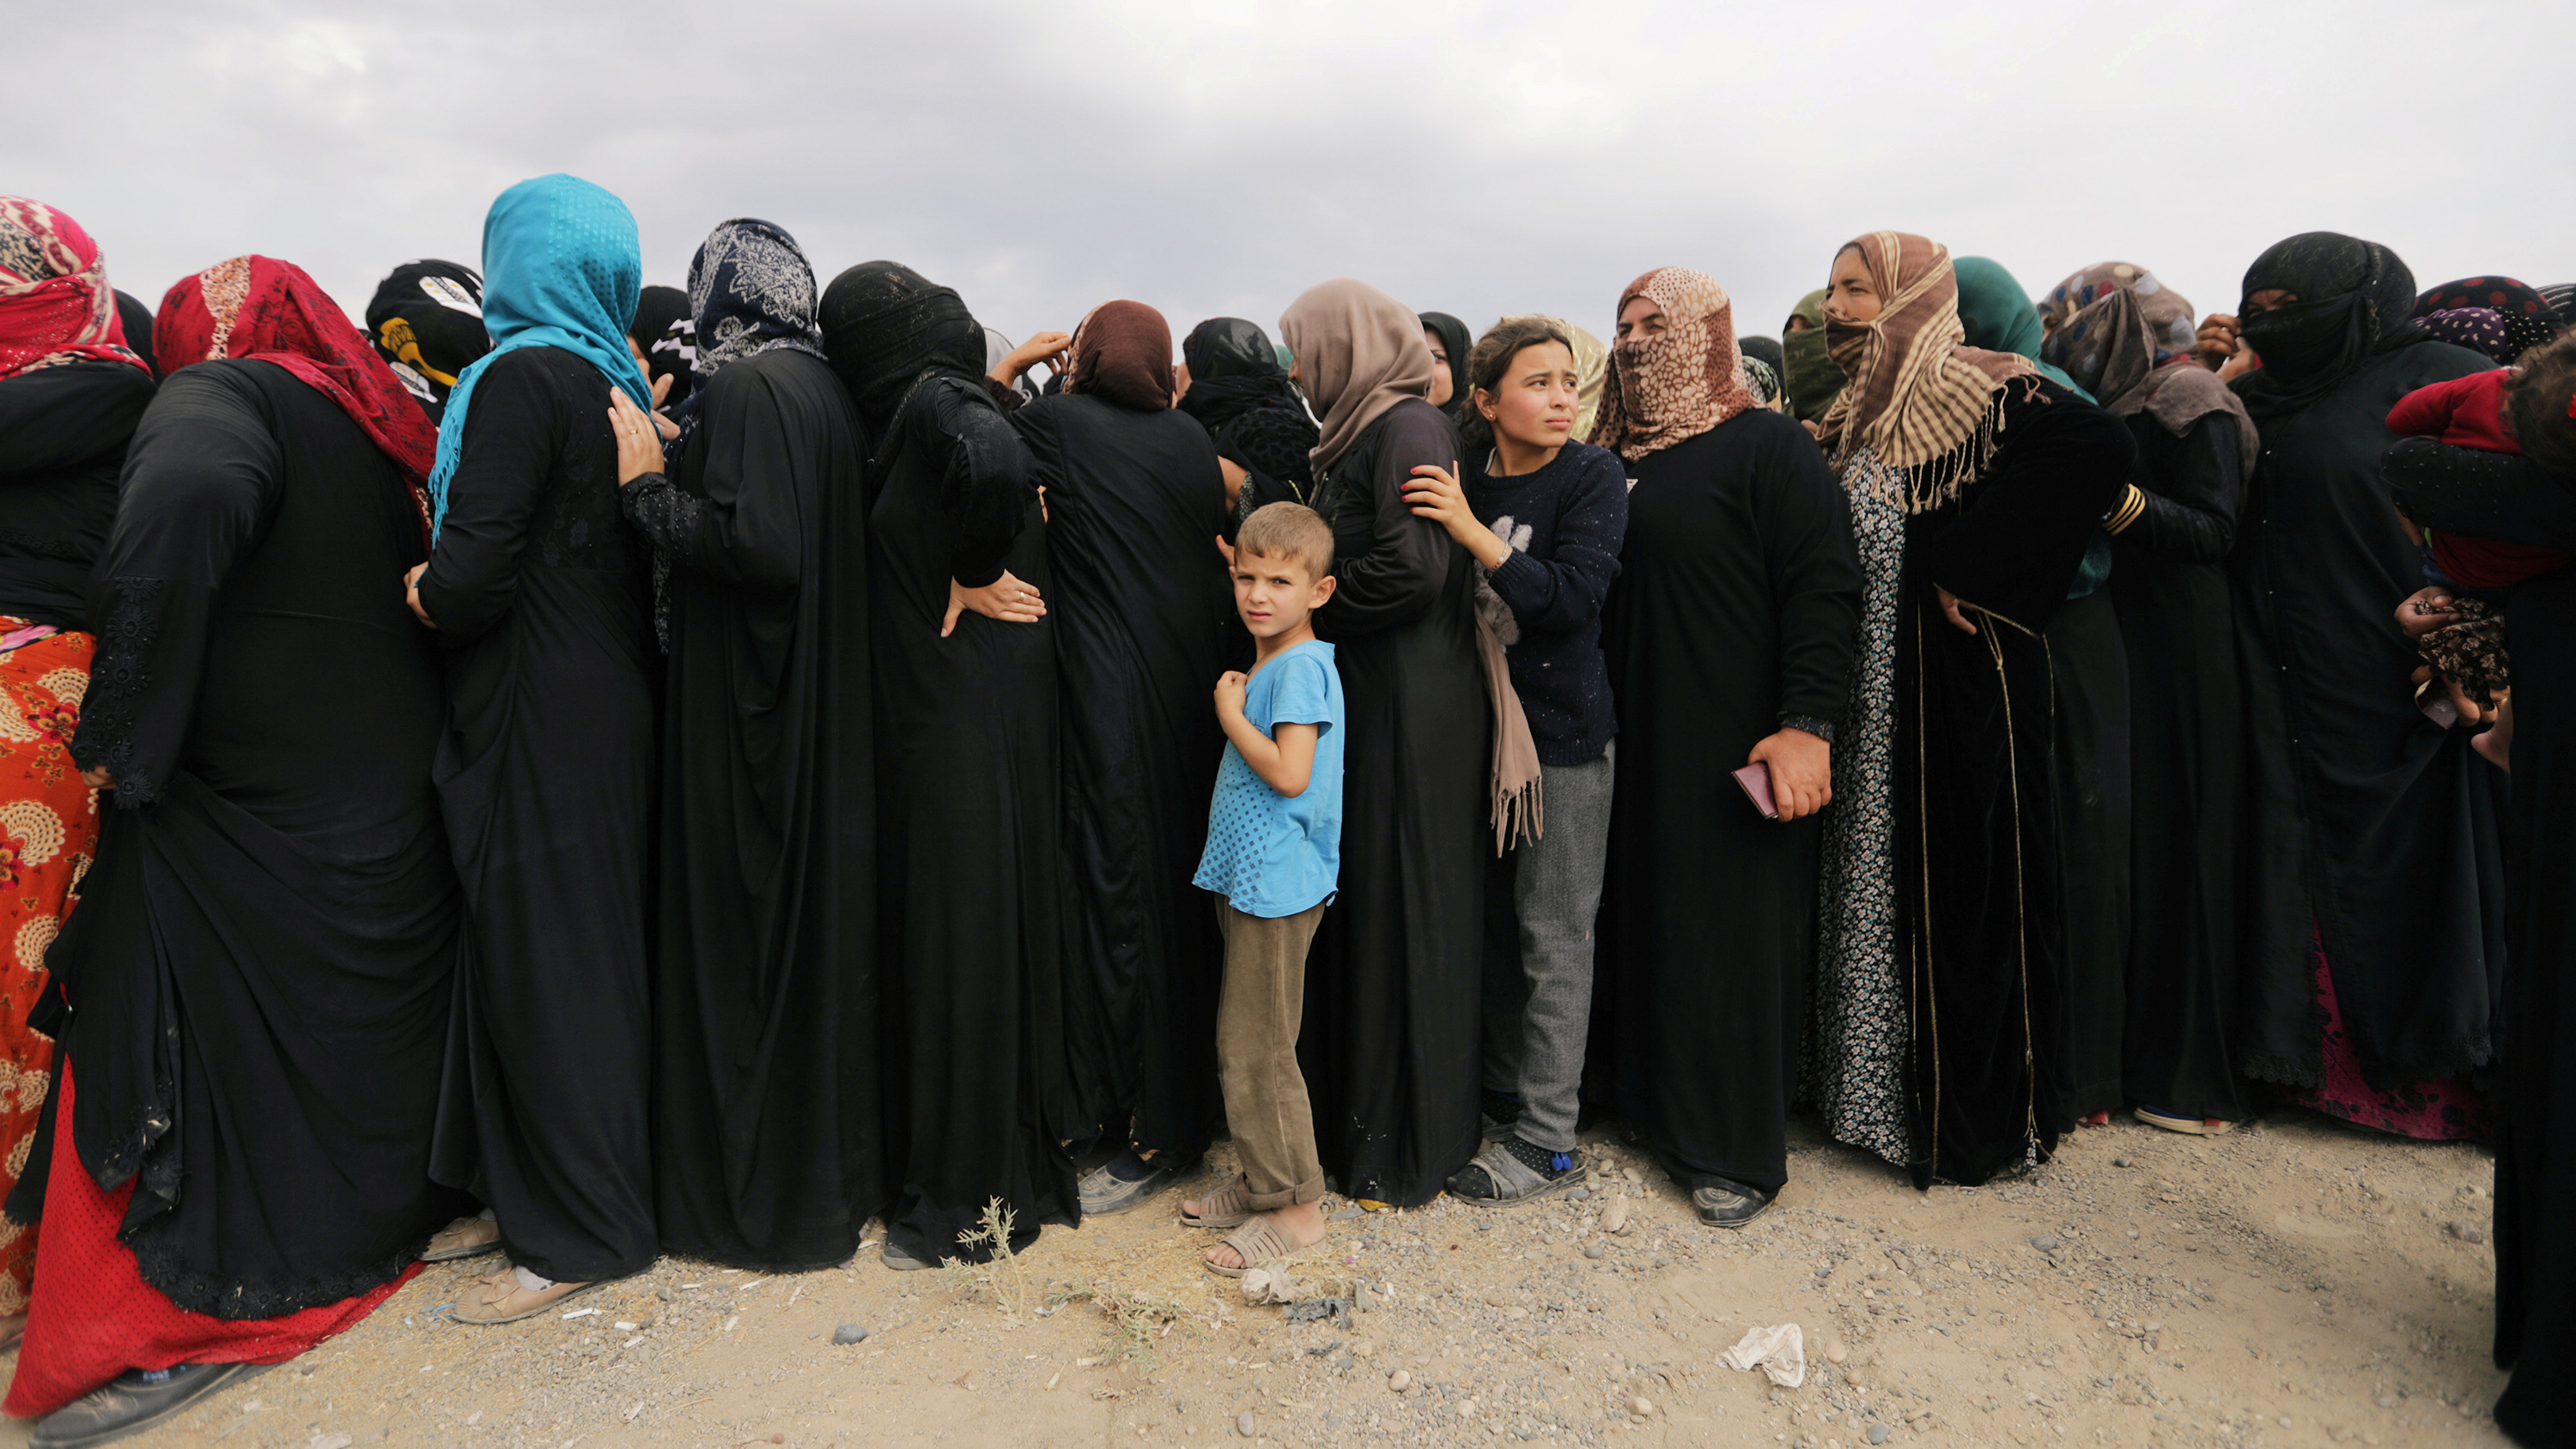 The photo shows a line of mostly women, all in black coverings, with a single boy in a light blue shirt in line with them. It is striking because his shirt stands out against a sea of black.